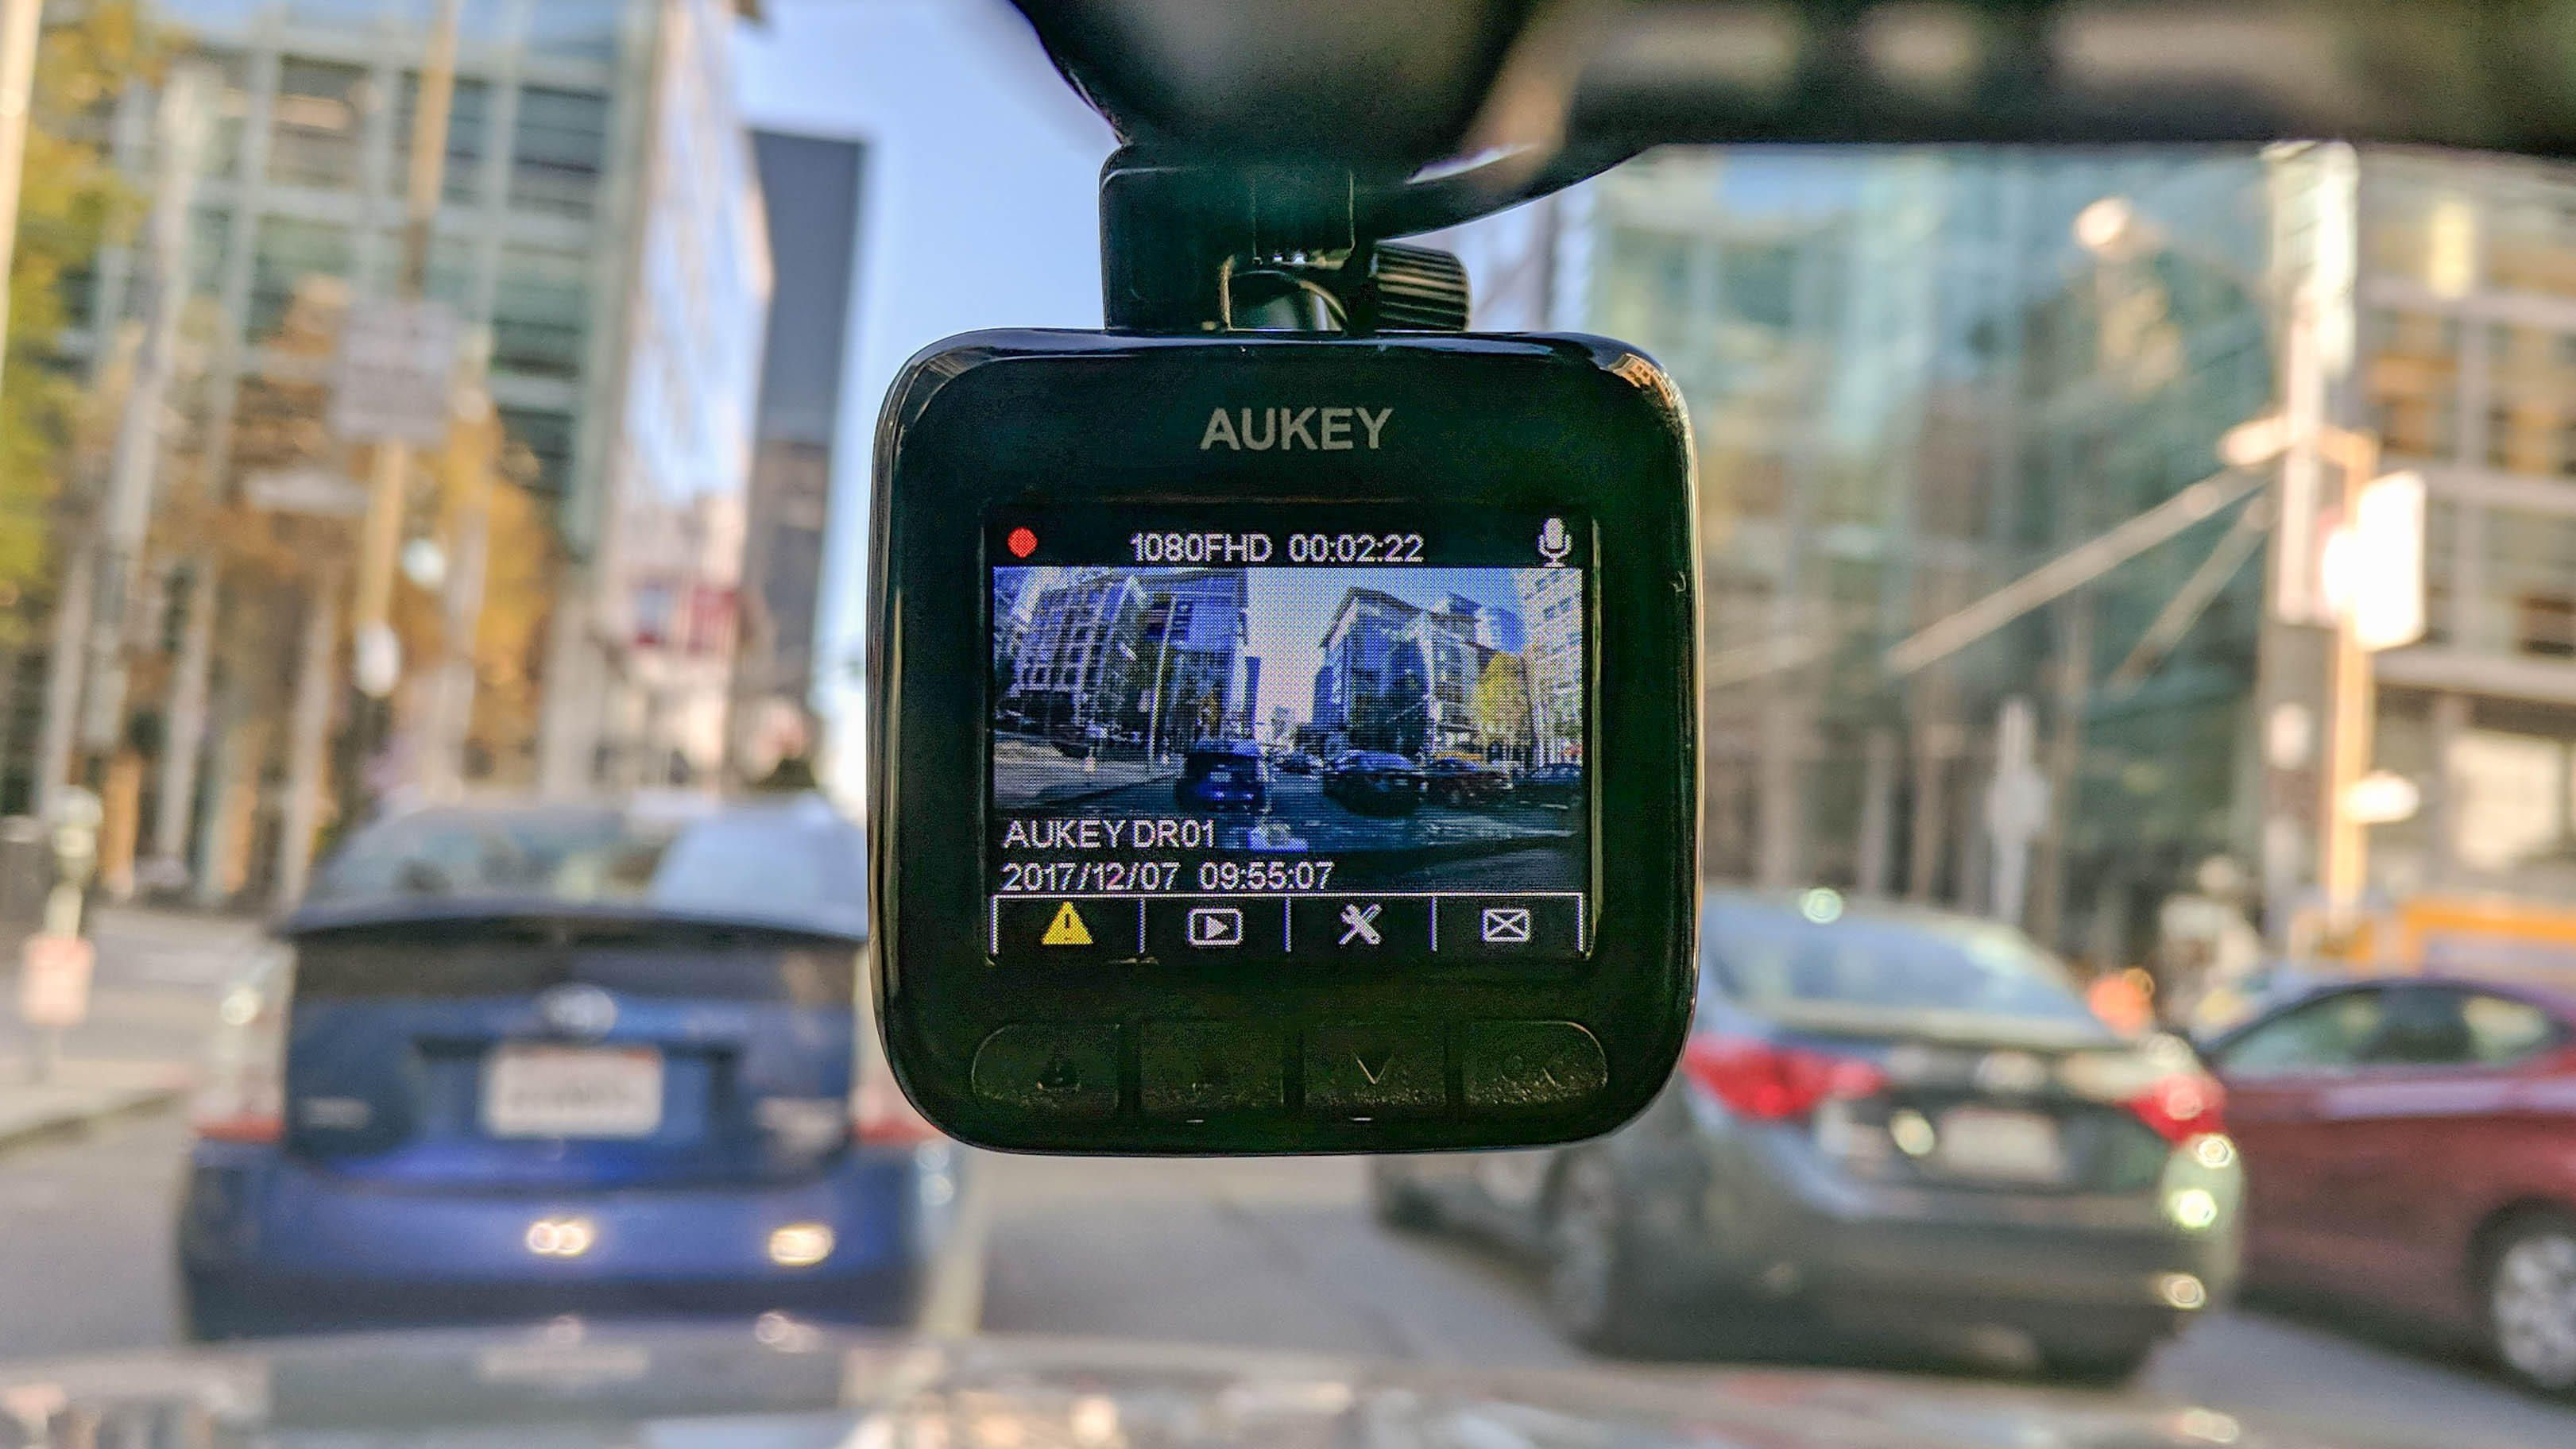 Aukey DR01 is a simple and effective dashboard camera